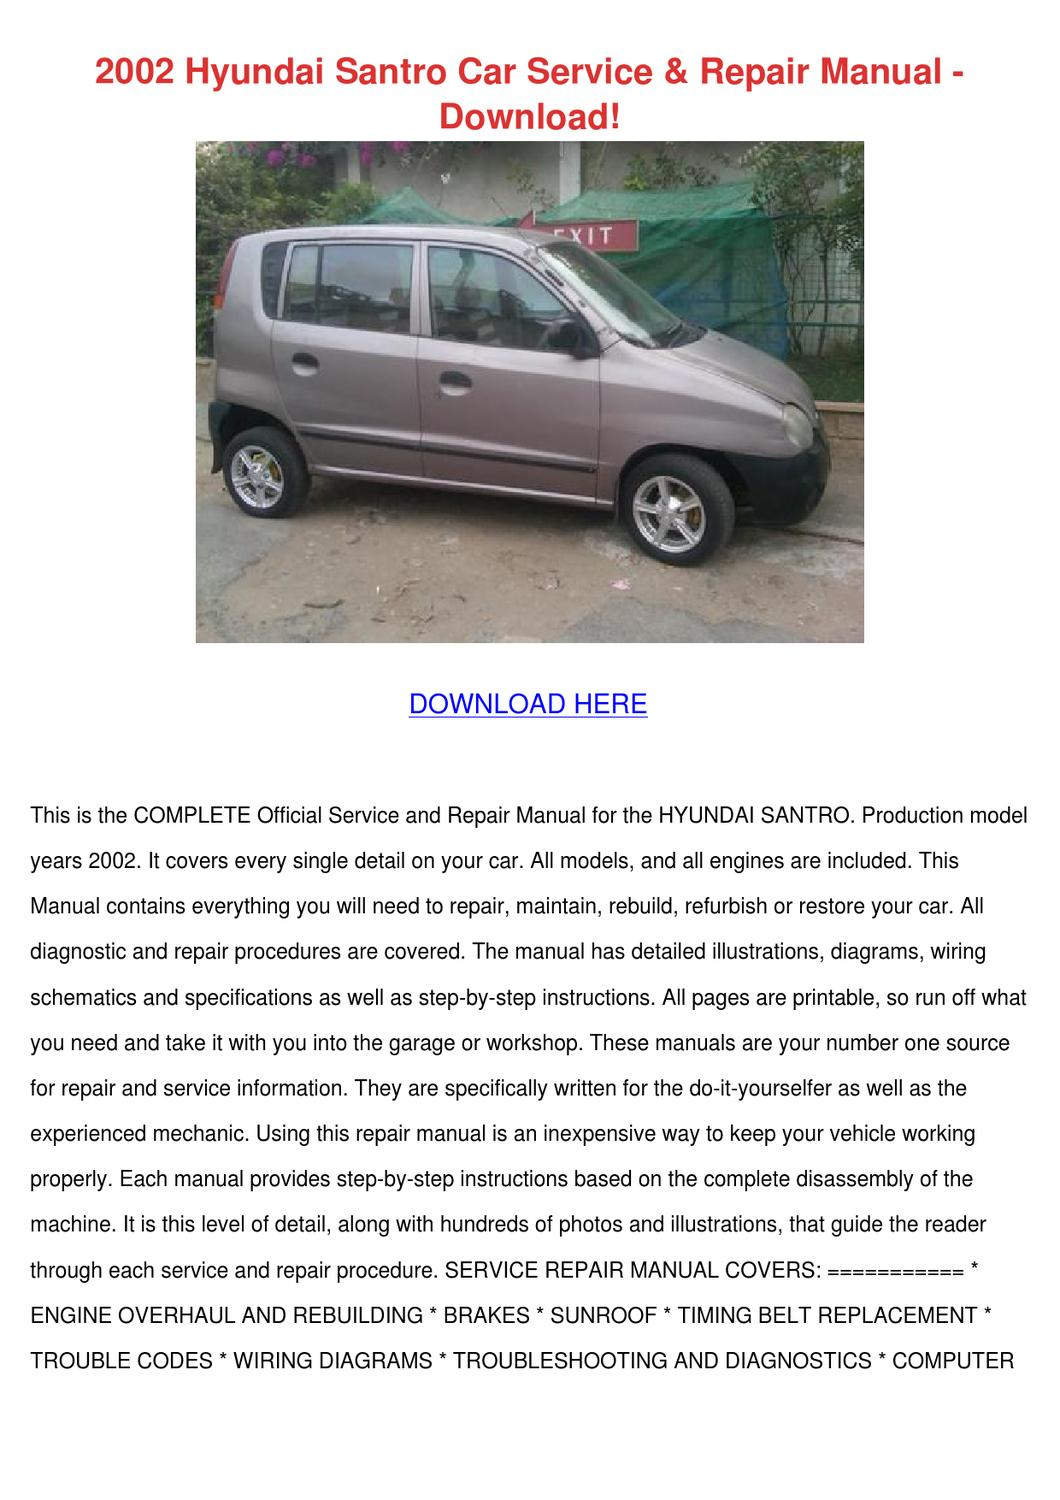 2002 Hyundai Santro Car Service Repair Manual By